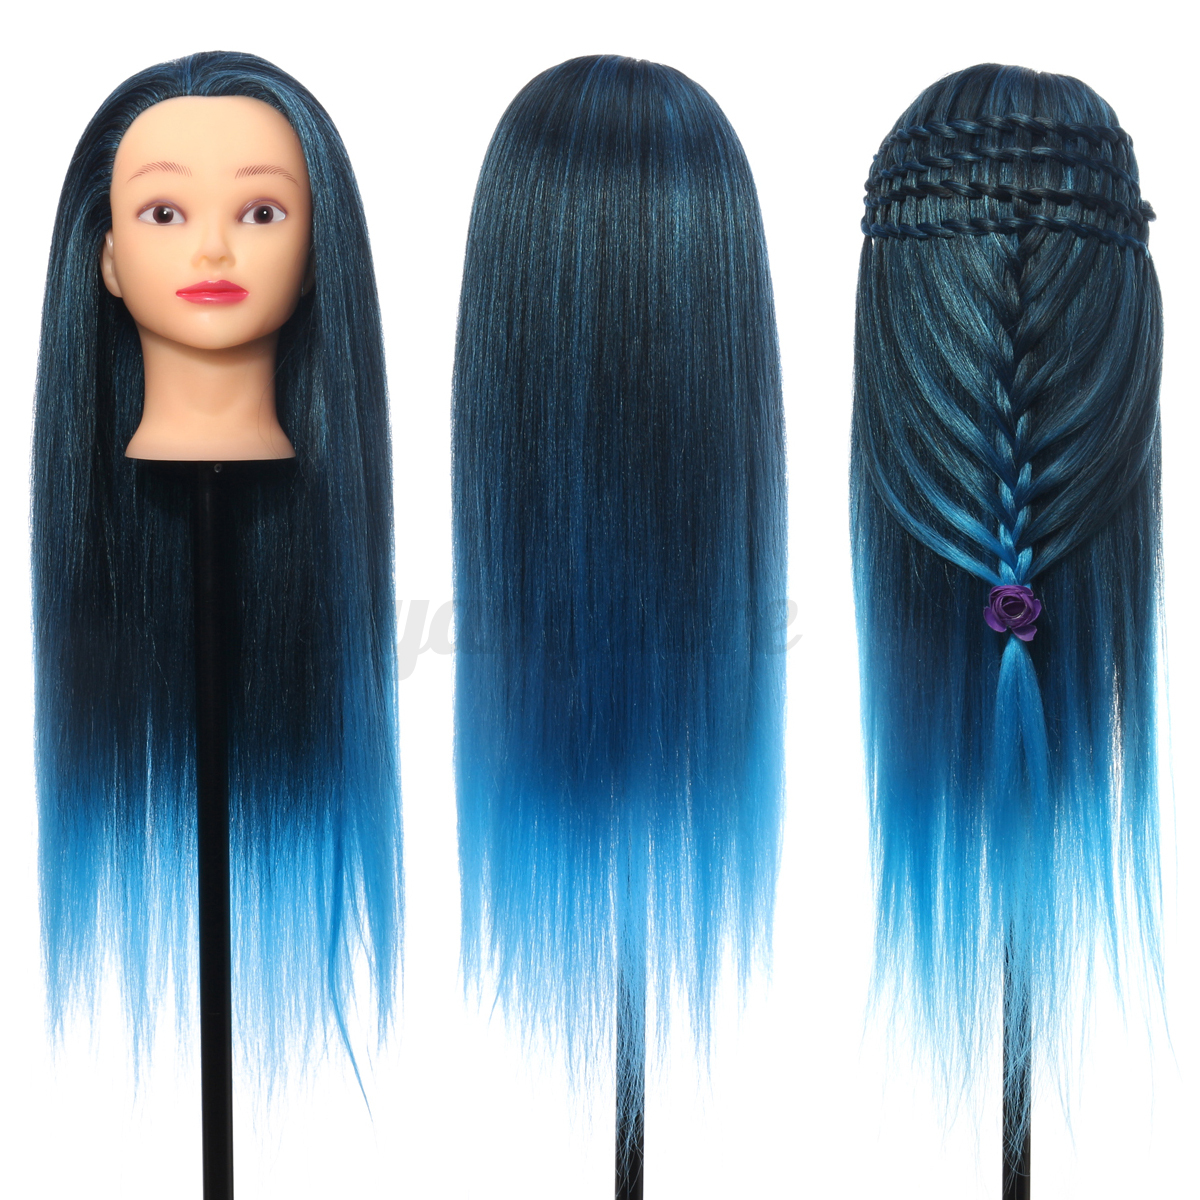 26 Colorful Hair Hairdressing Practice Training Head Mannequin